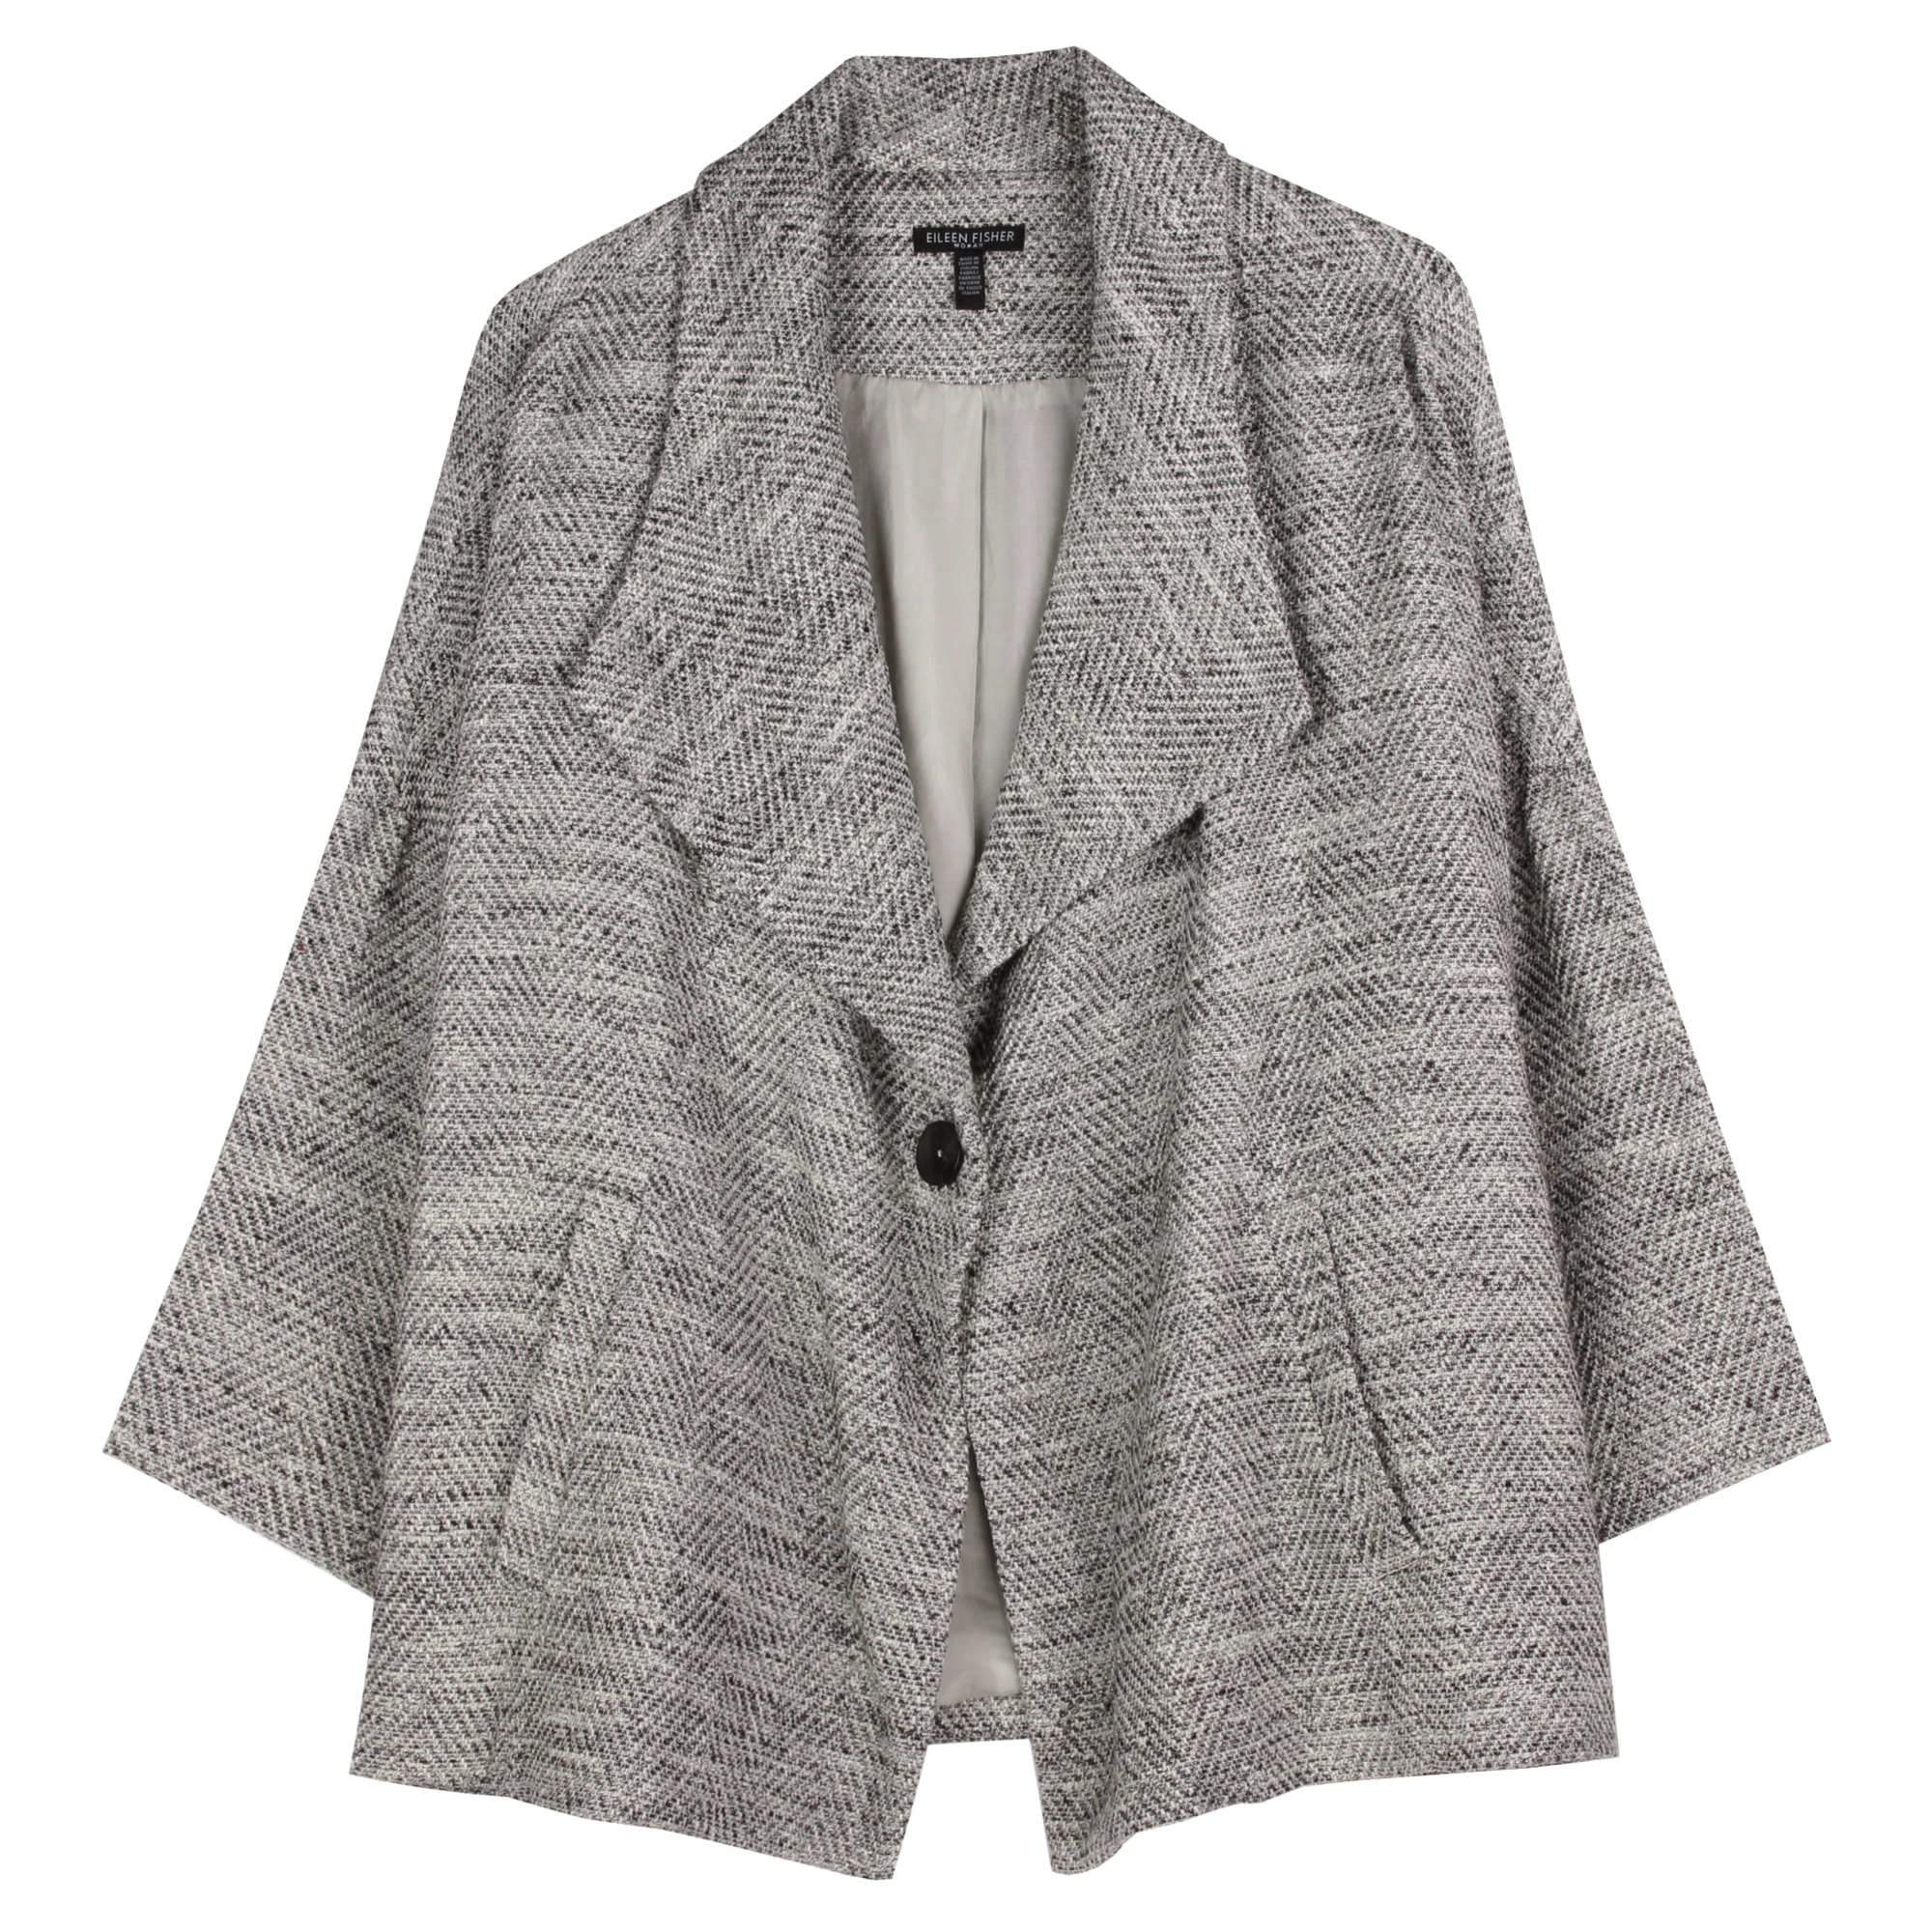 Crushed Metallic Voile Jacket